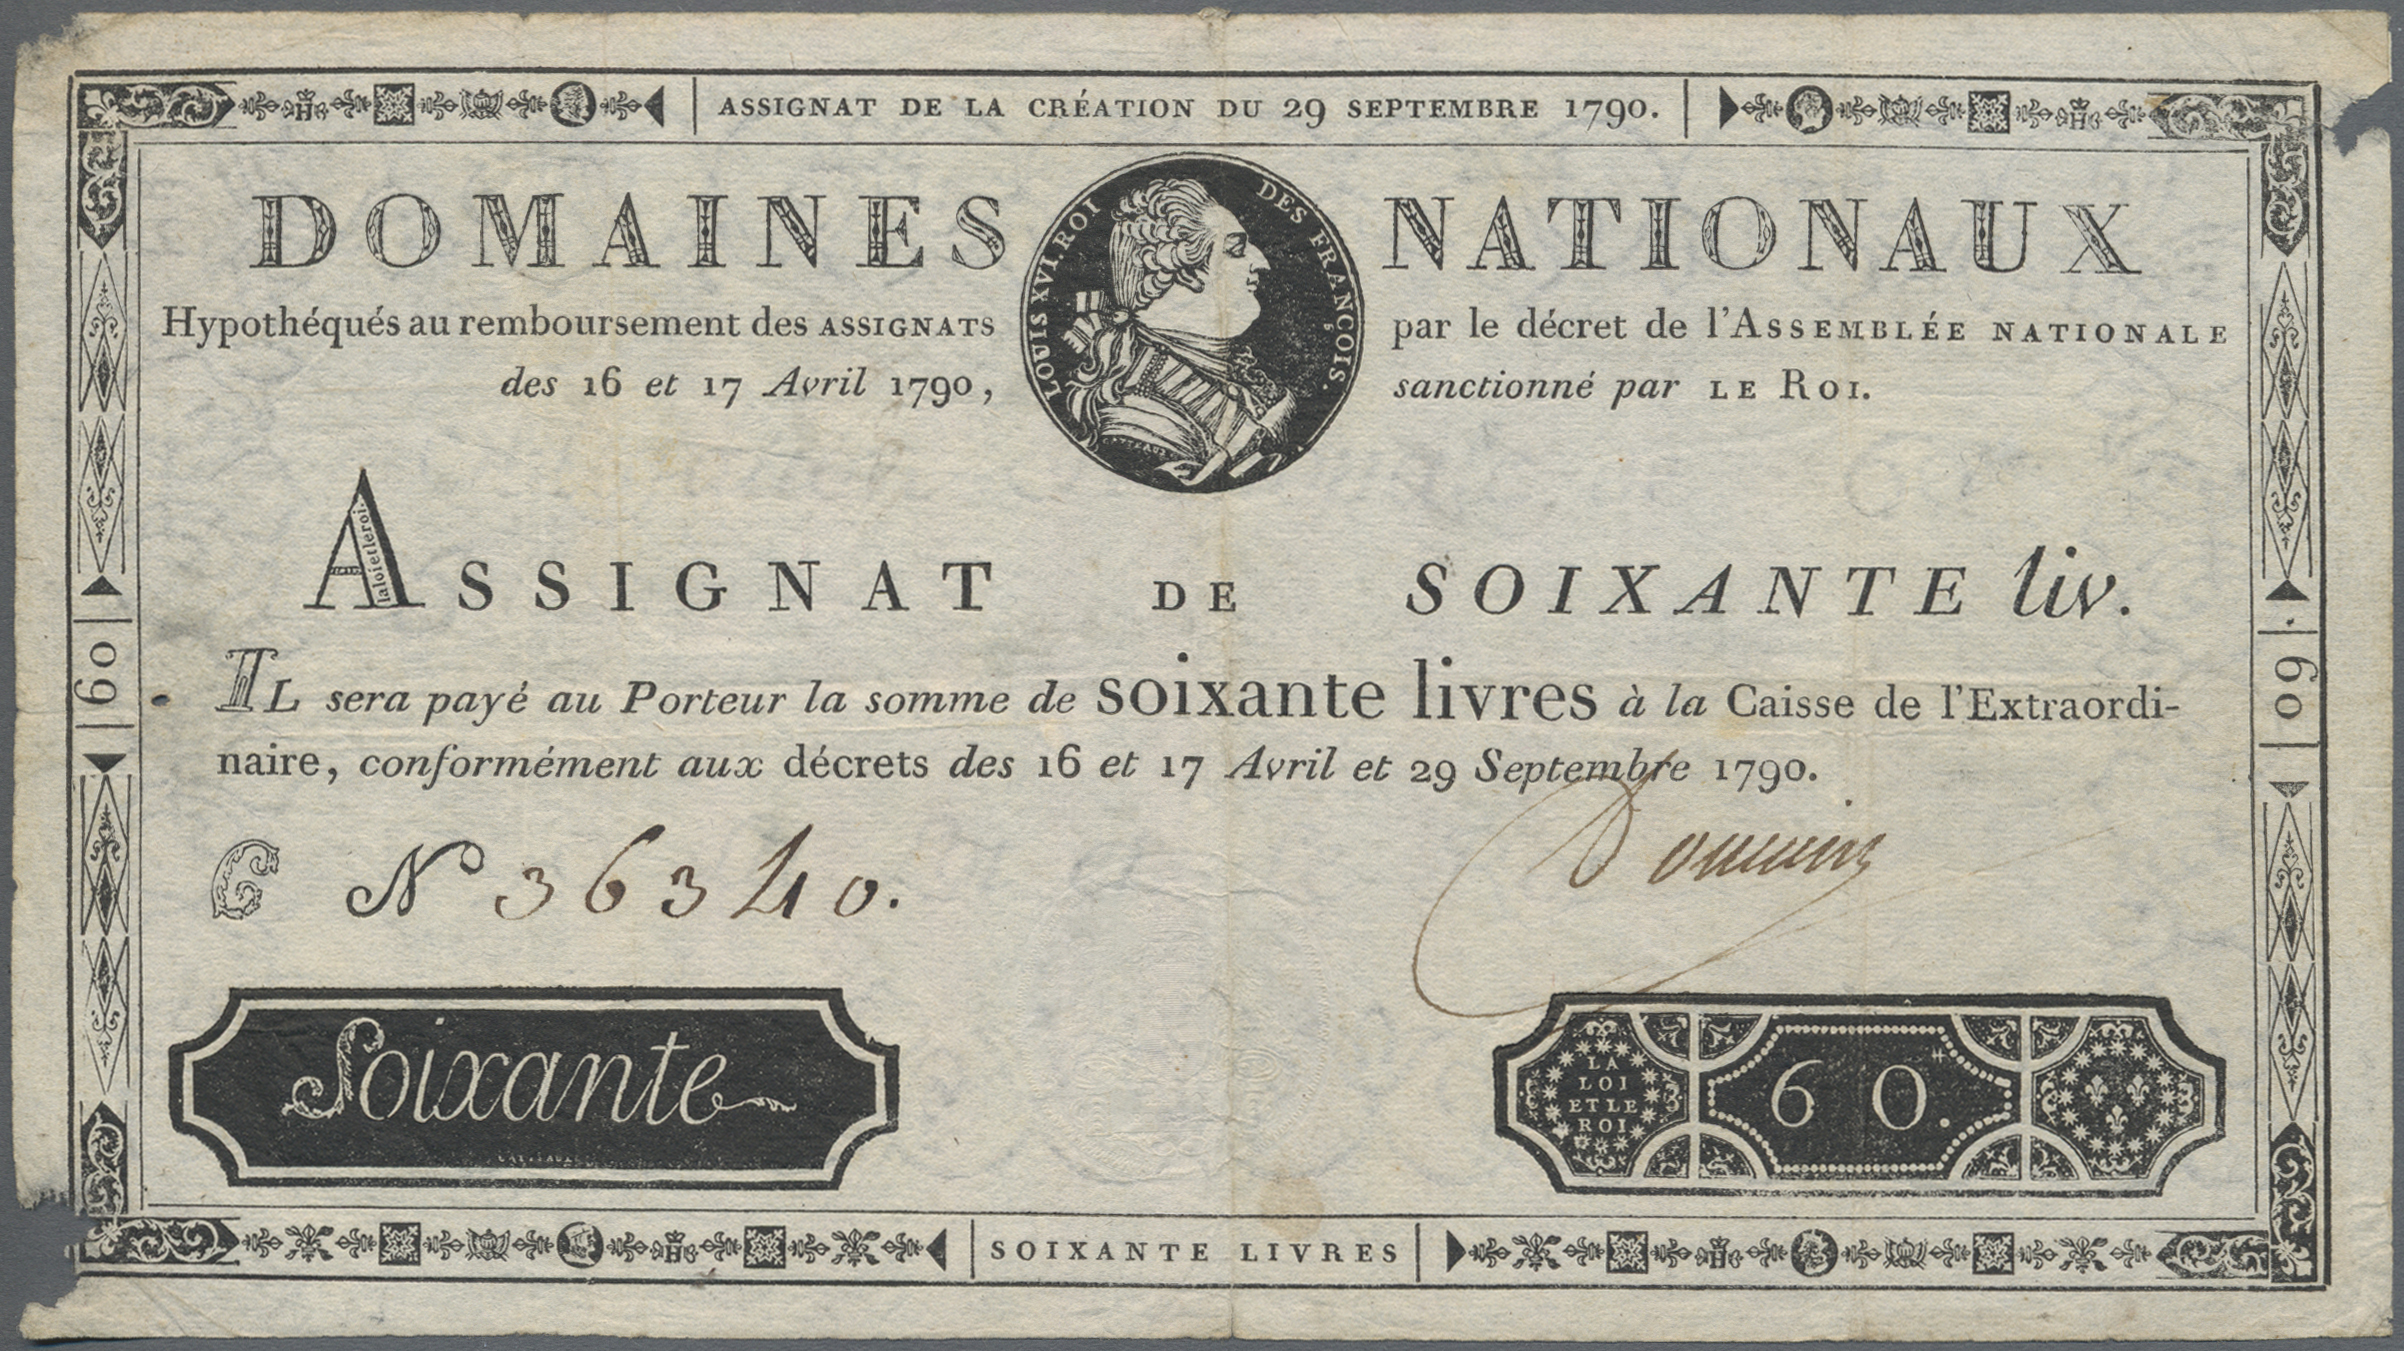 Lot 00260 - France / Frankreich | Banknoten  -  Auktionshaus Christoph Gärtner GmbH & Co. KG Sale #48 The Banknotes